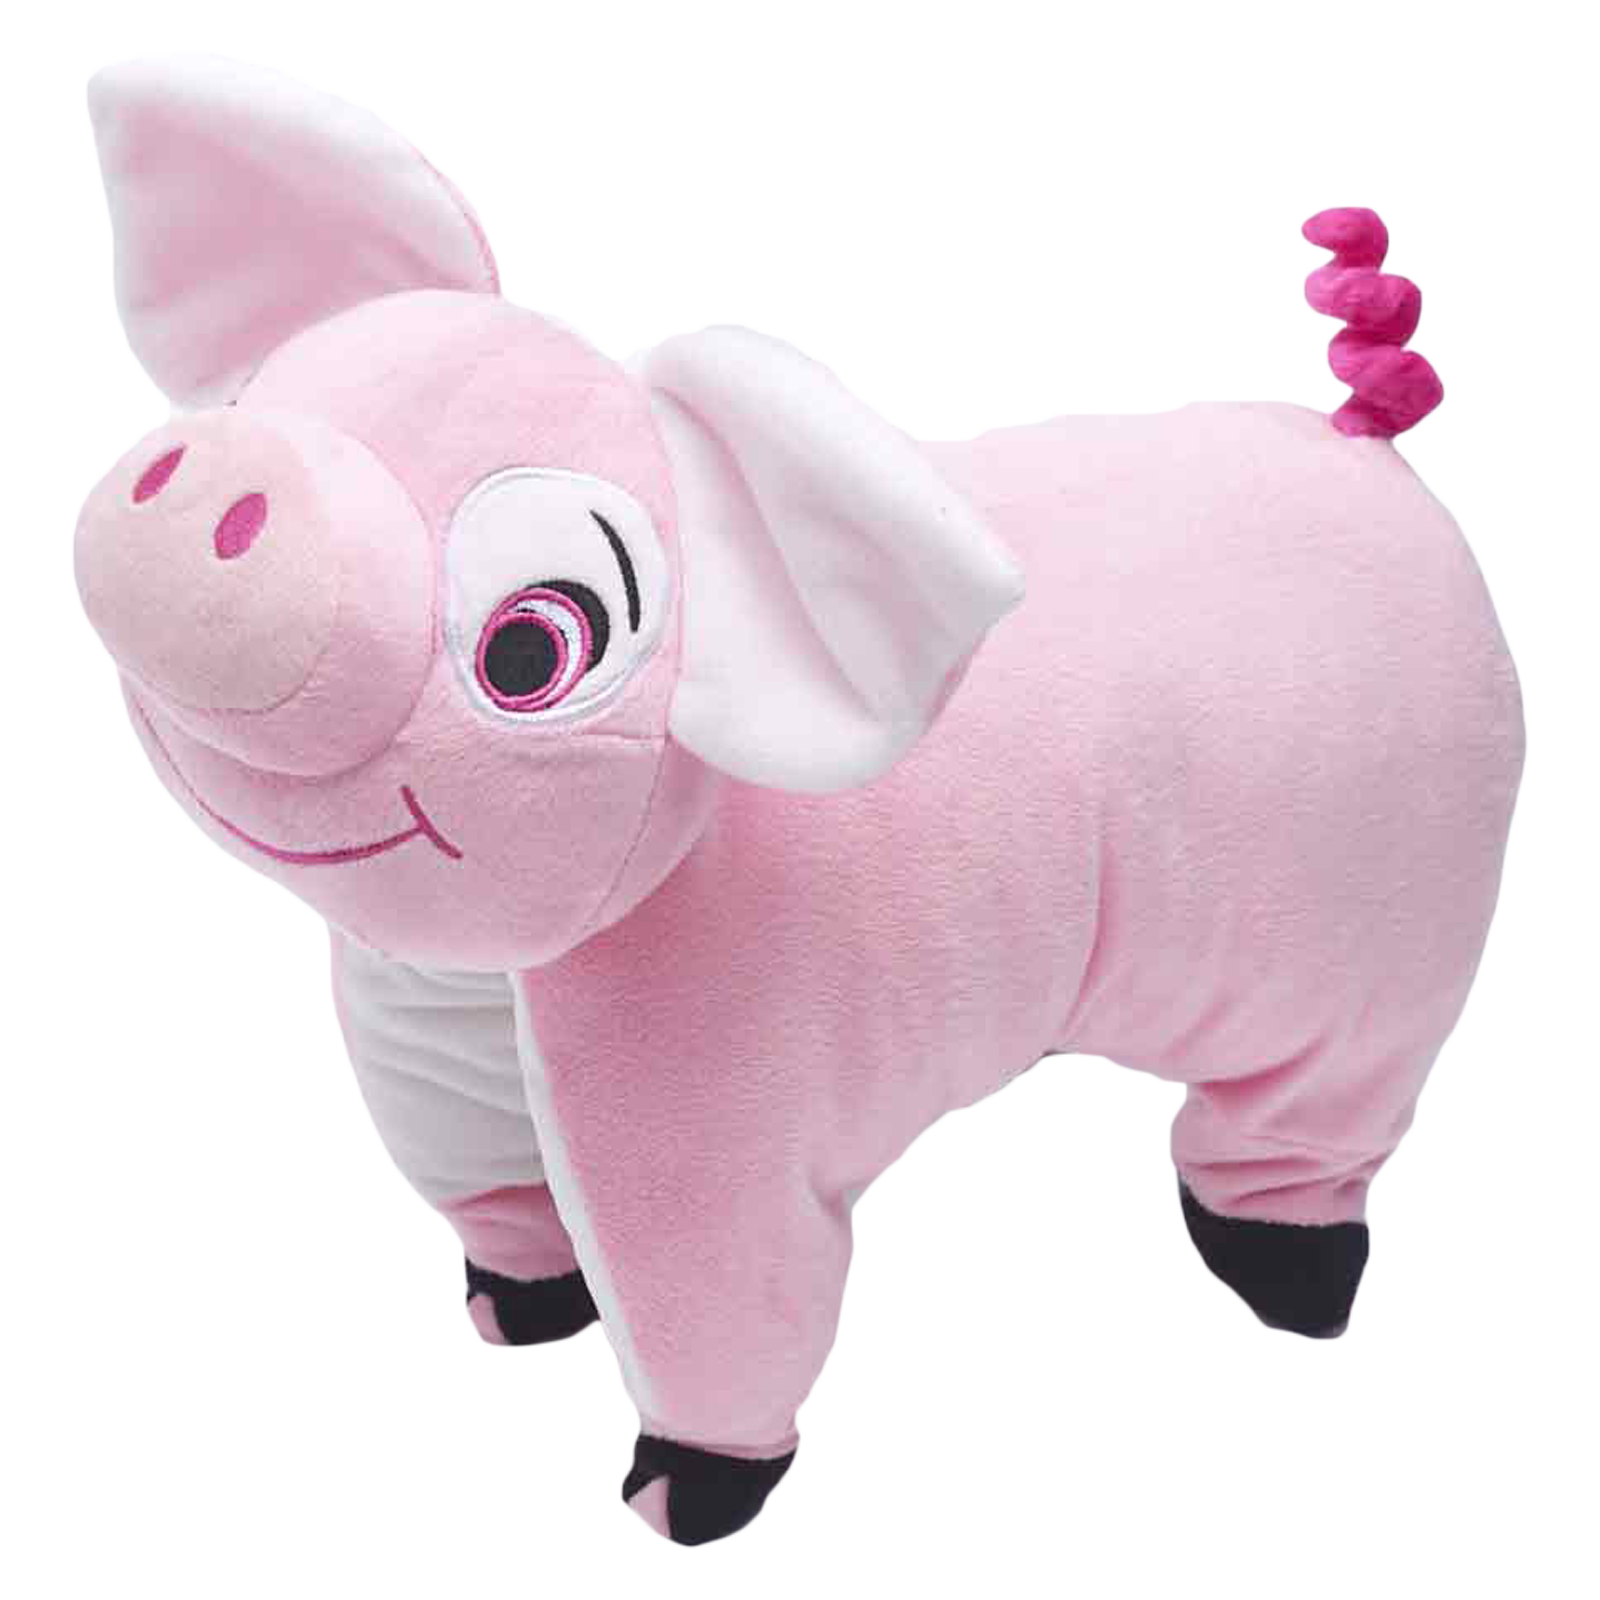 Travel Blue Pinky The Pig Polyester Neck Pillow (Soft and Comfortable, Multicolor)_1